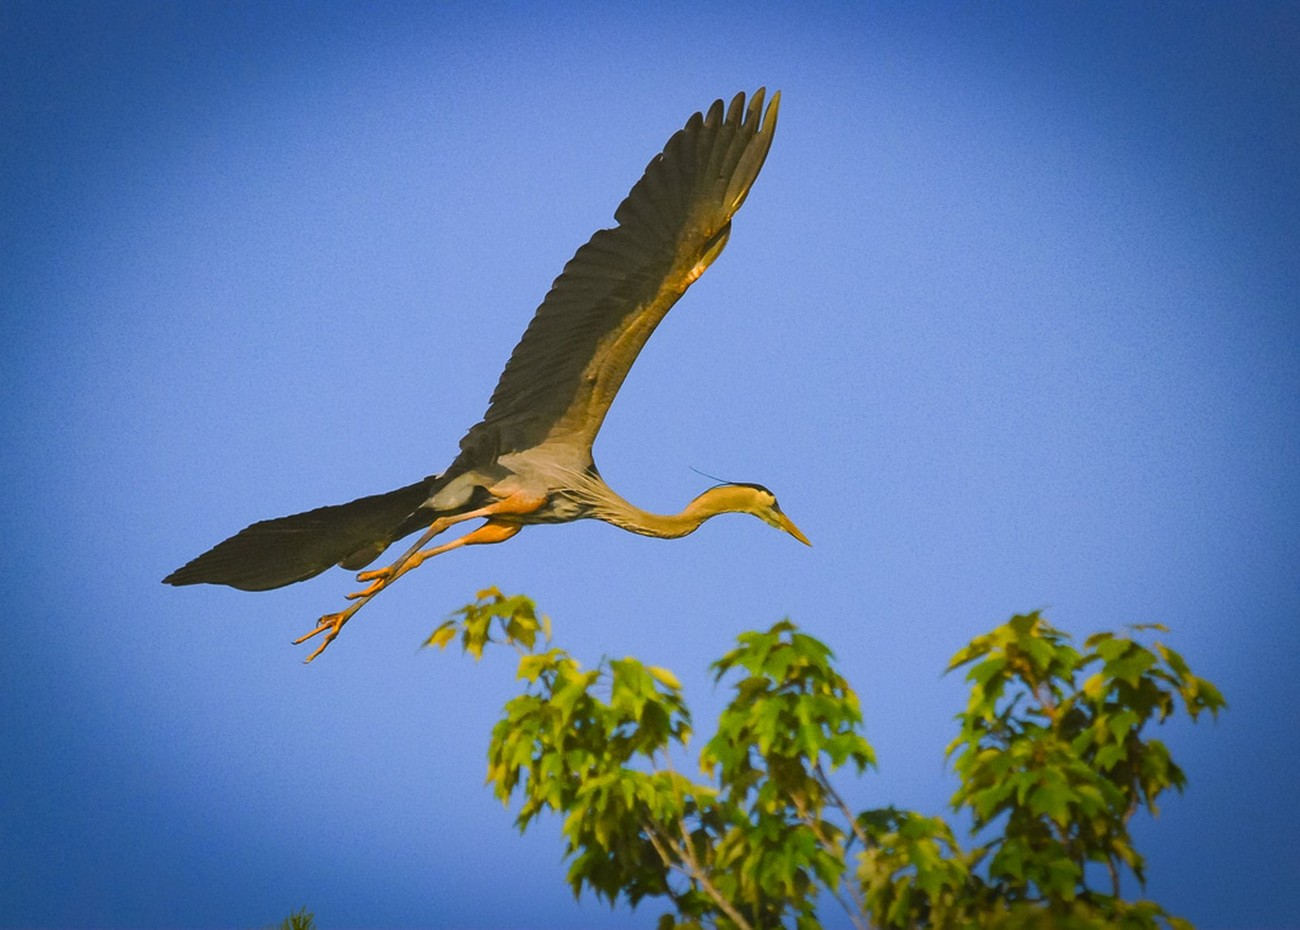 One of the Herons ready to land.